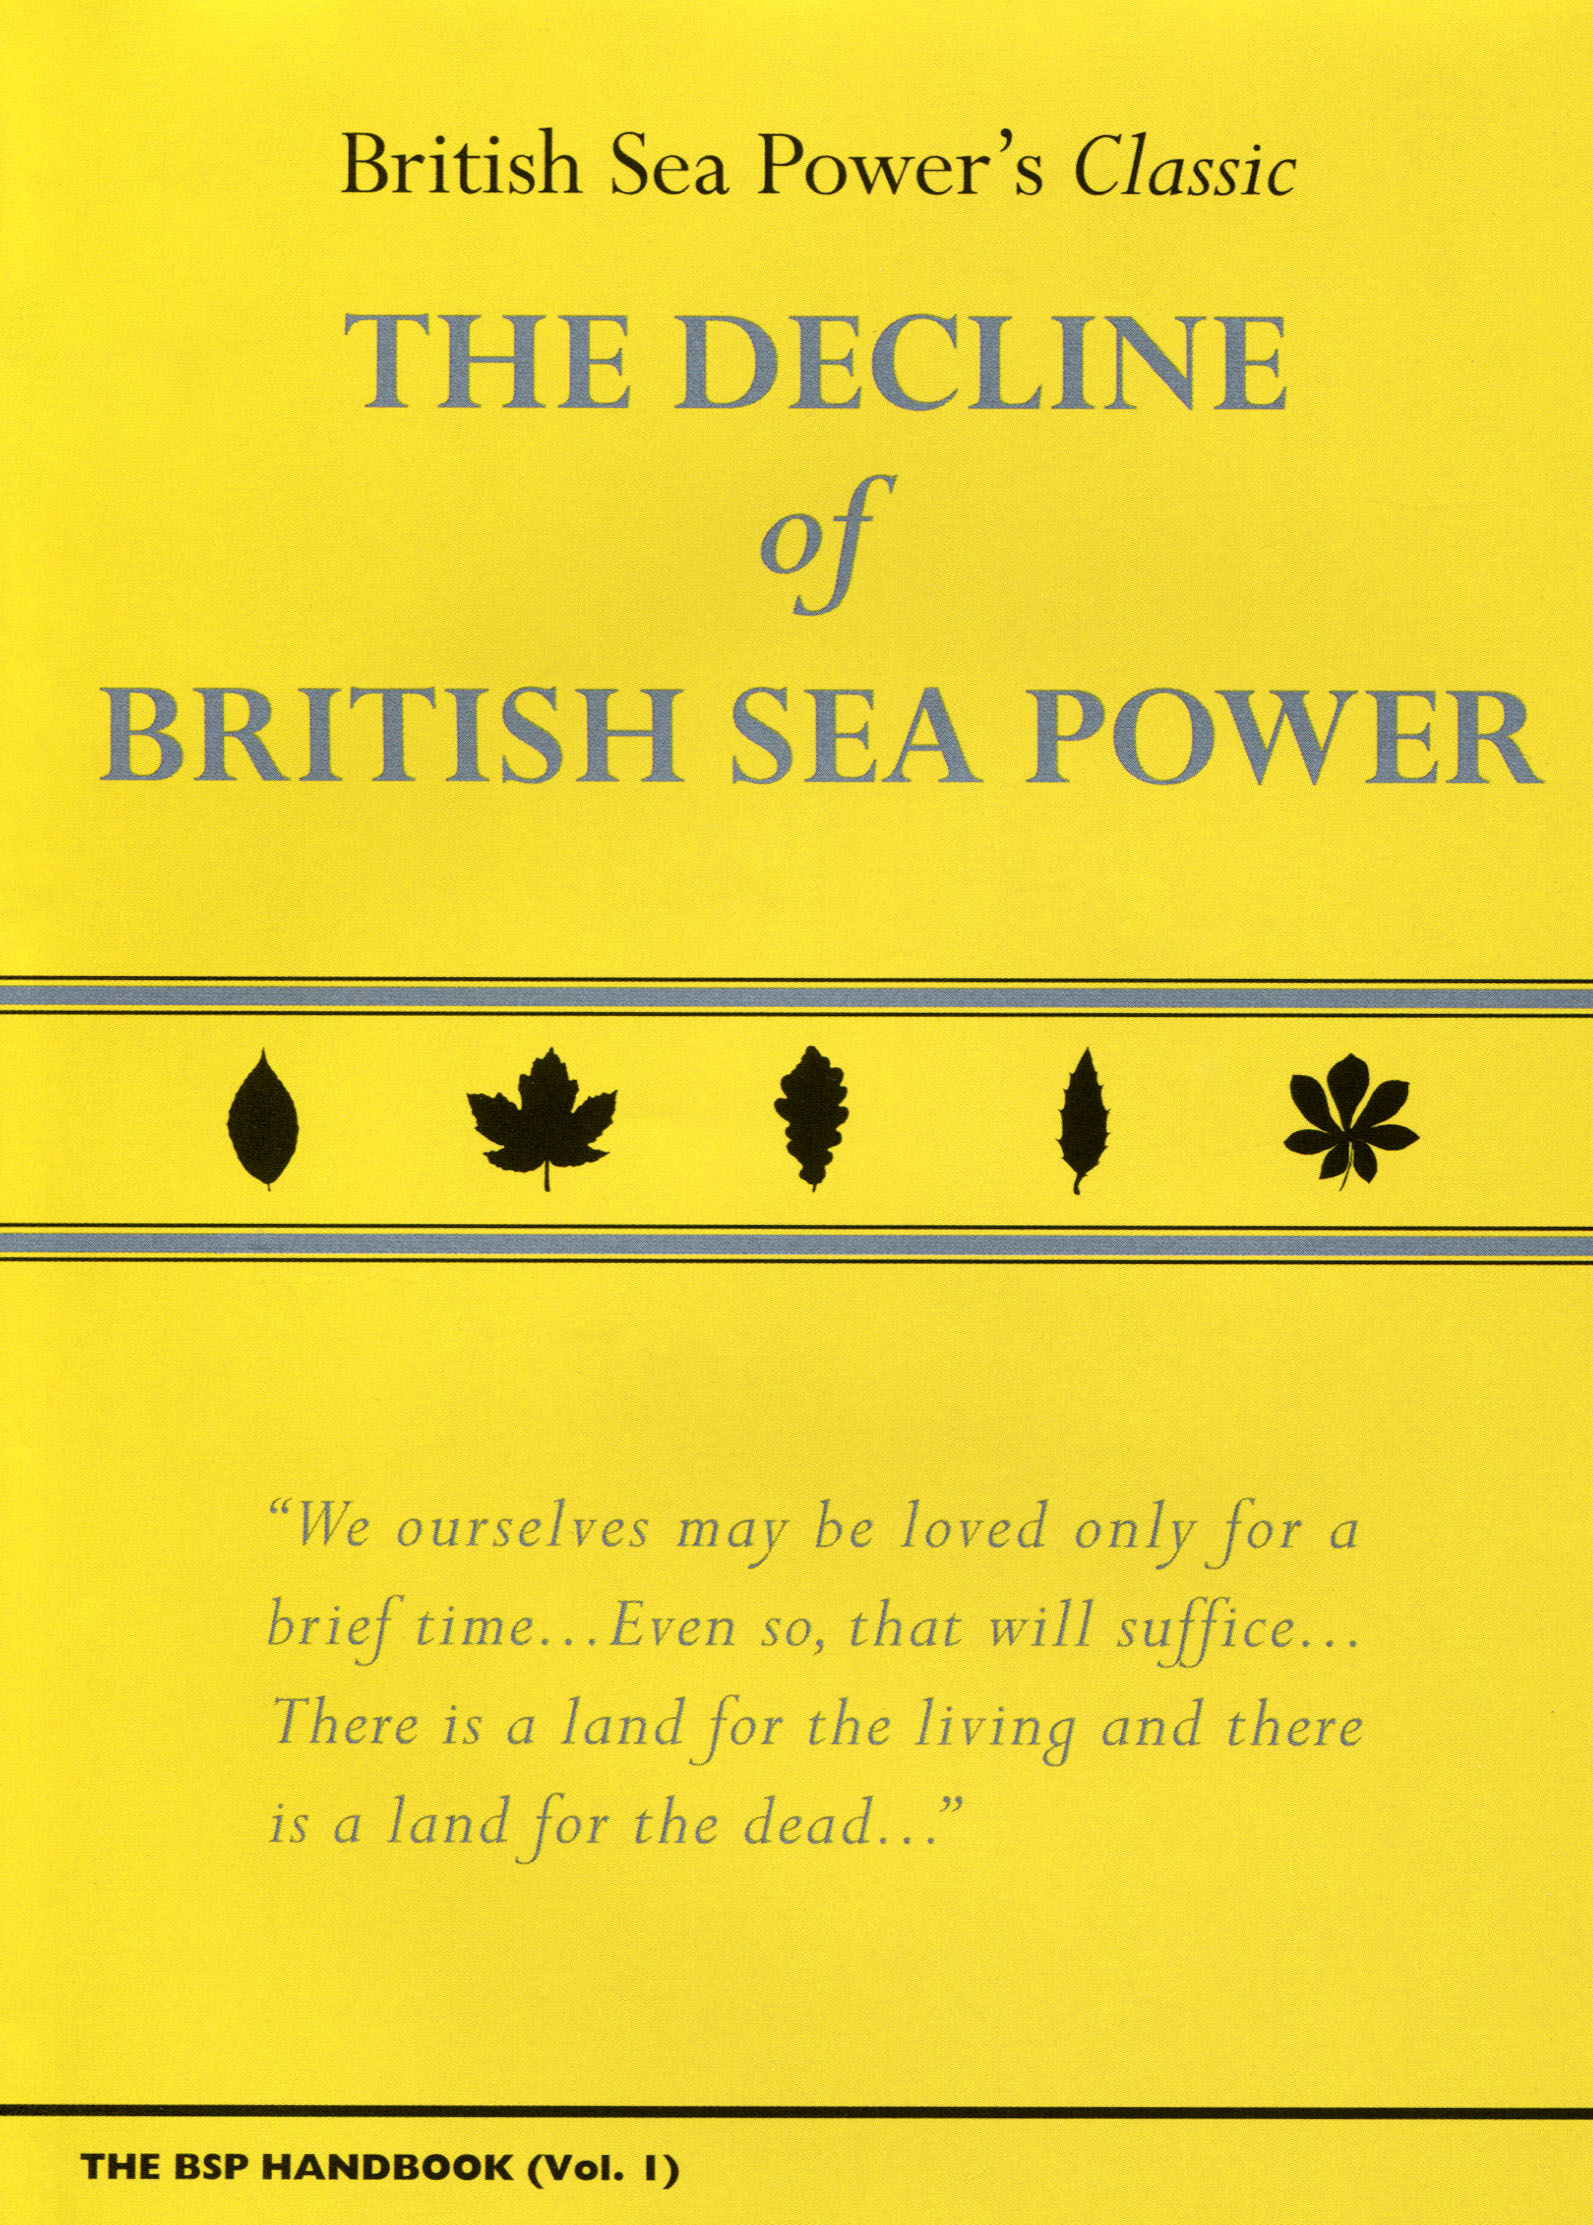 British Sea Power: The Decline Era on Film